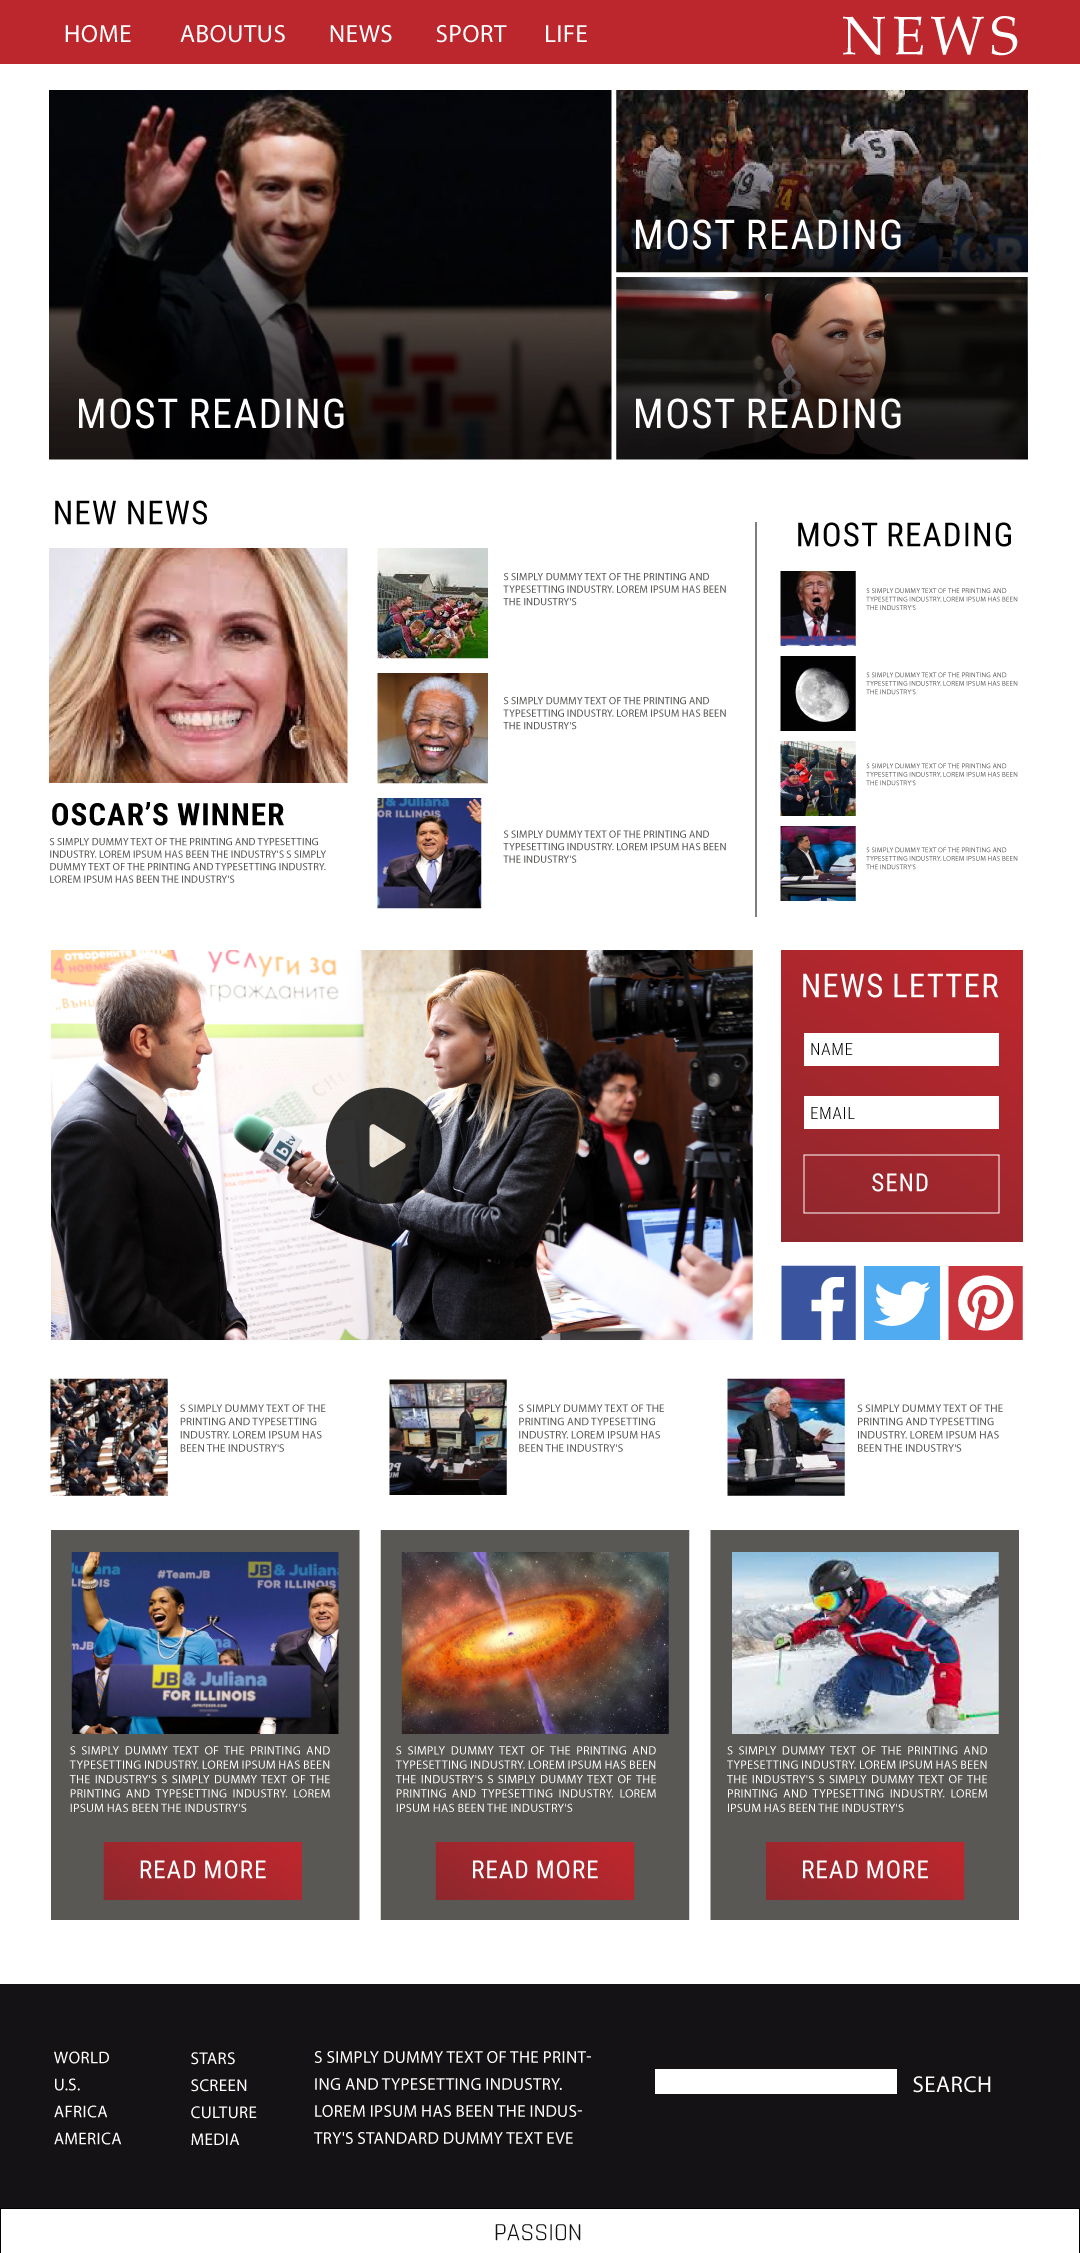 Design a news website template